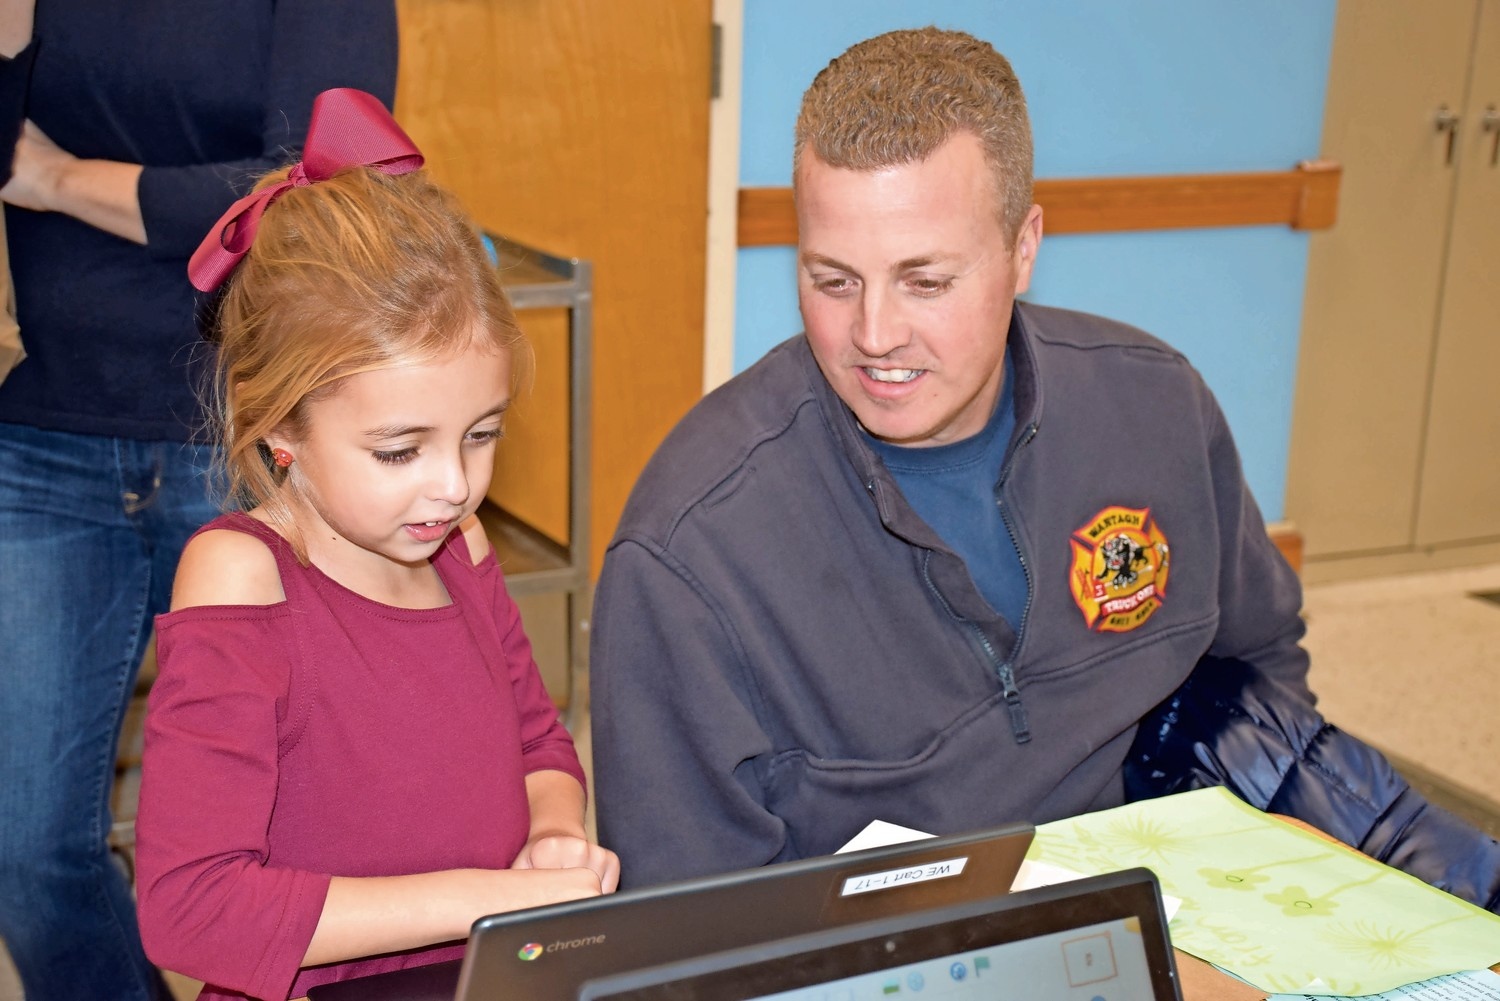 Adriana Nordquist and her father, Andrew, attempted some coding on the district's new Chromebooks during the Wantagh Elementary School Maker Fair.